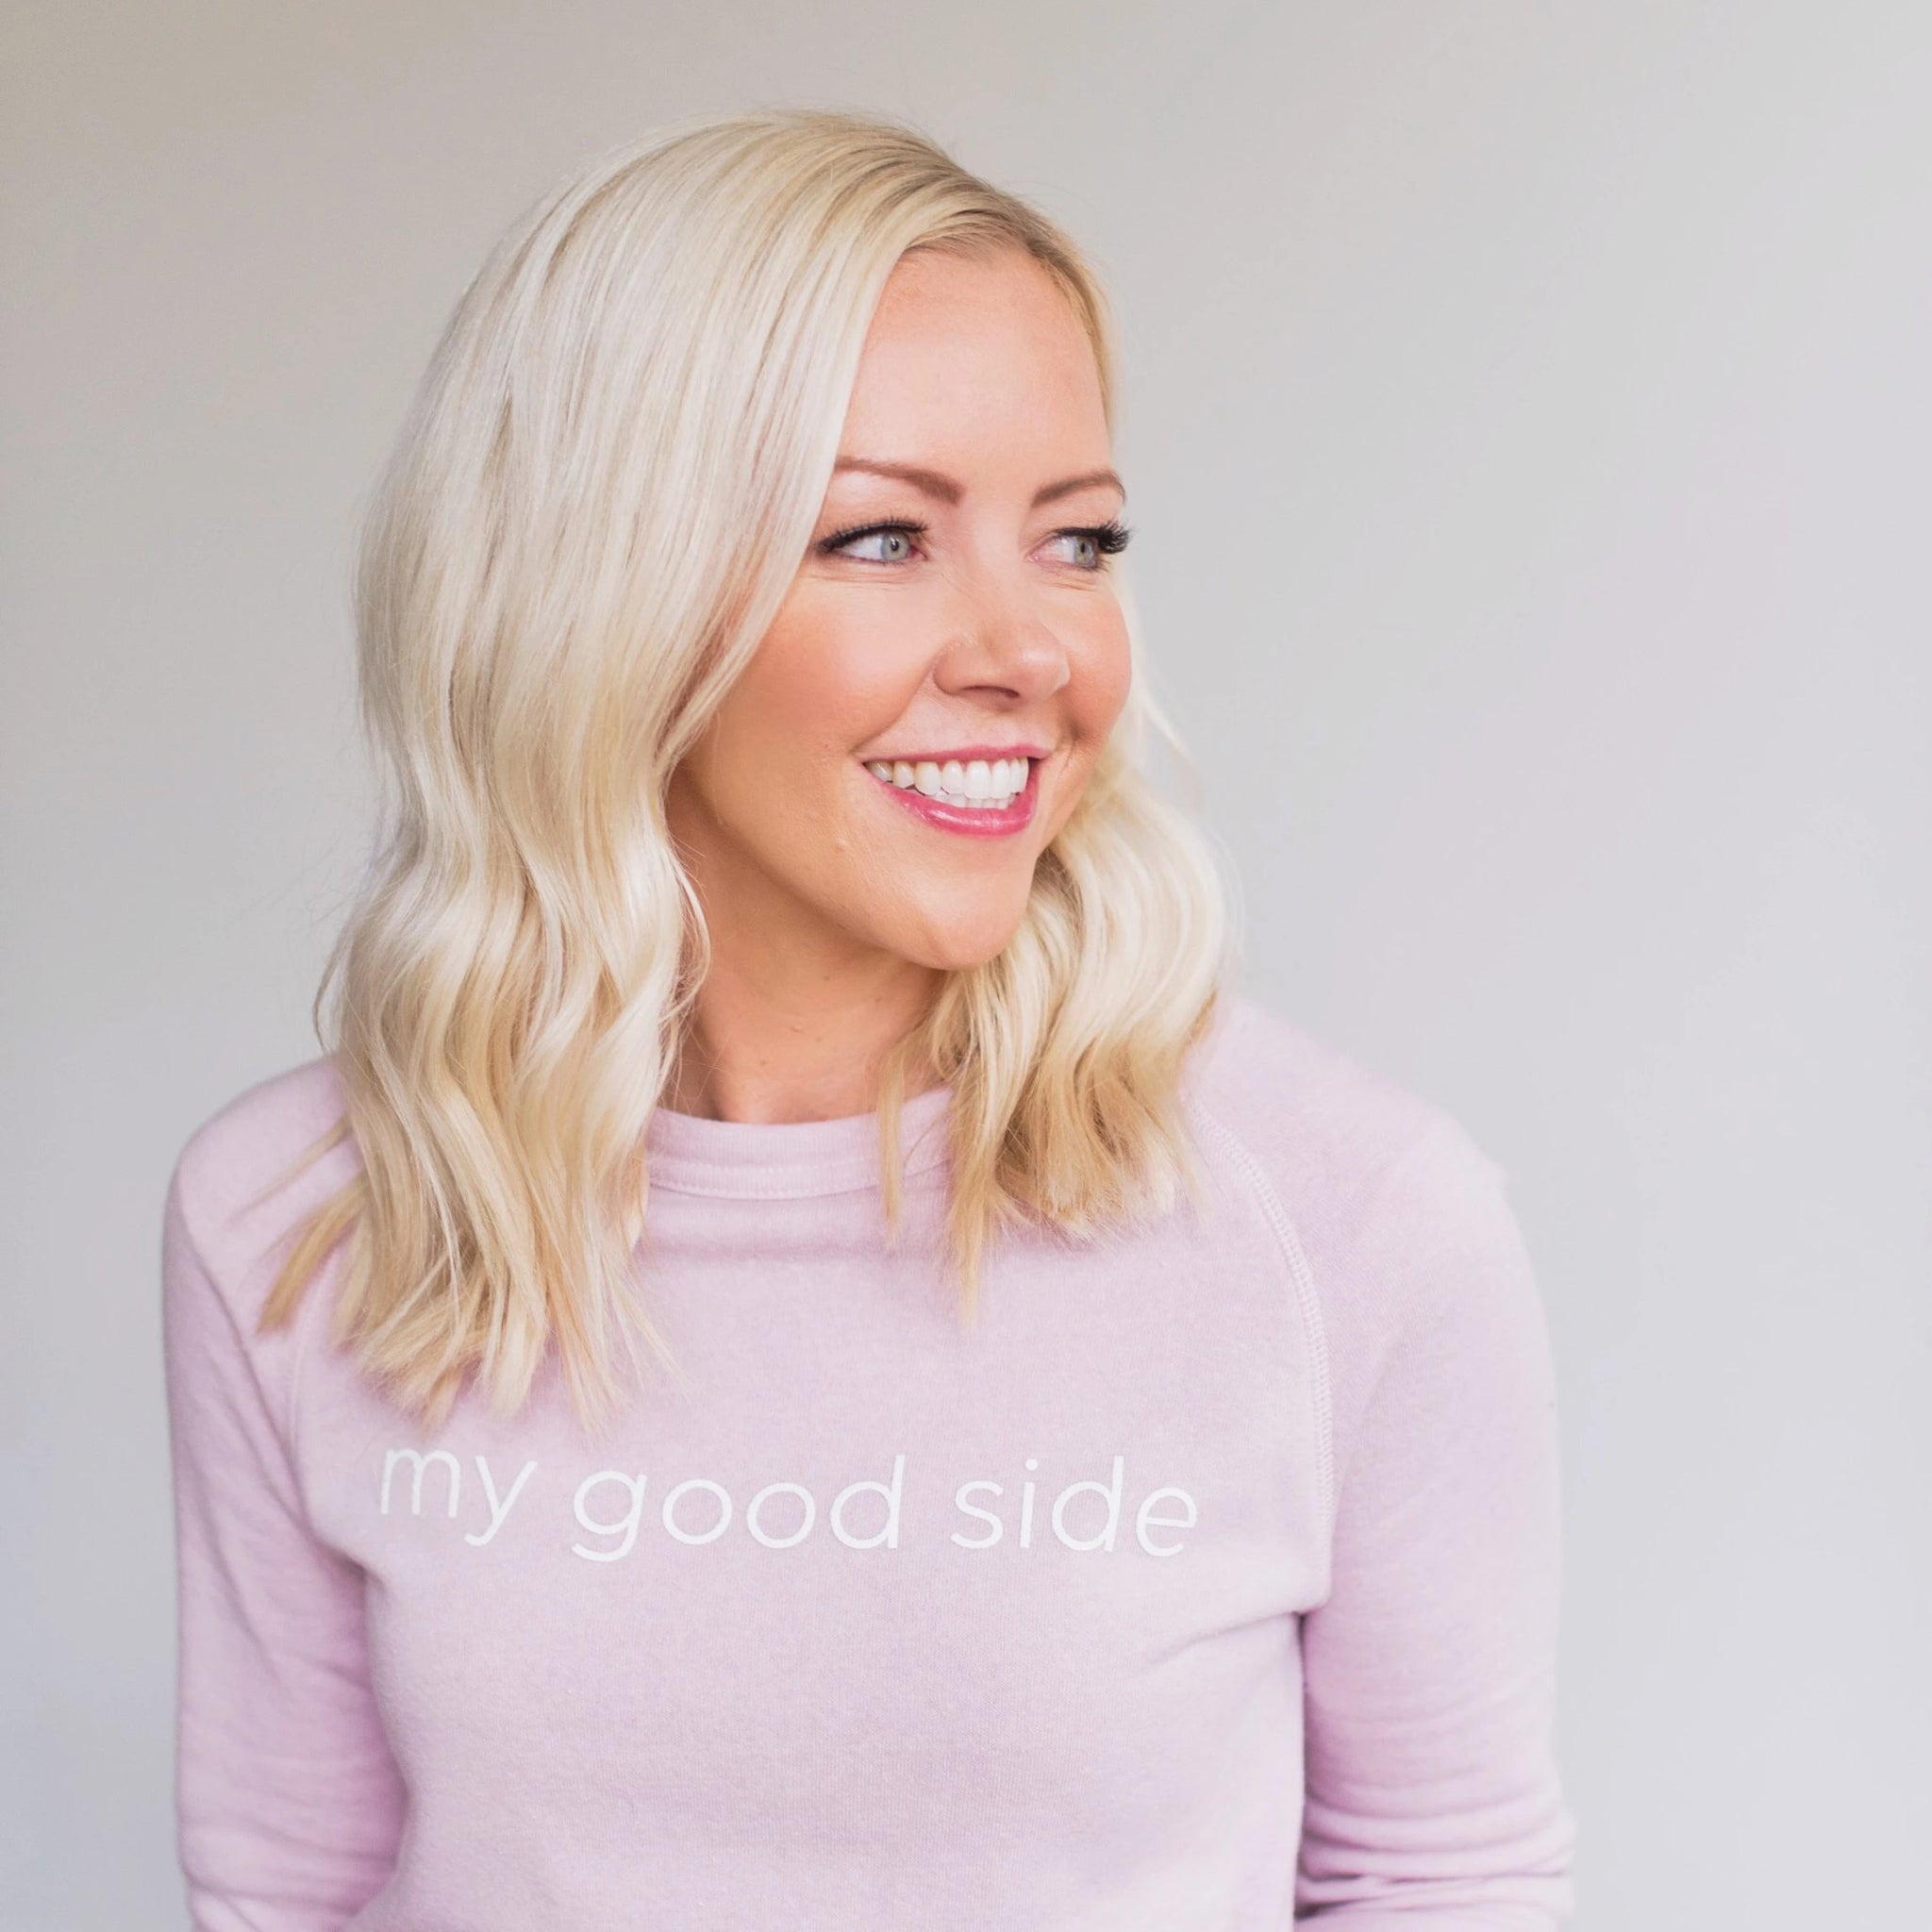 Courtney smiling to the side, wearing her light pink sweatshirt that says the words 'my good side' that can be purchased on the website